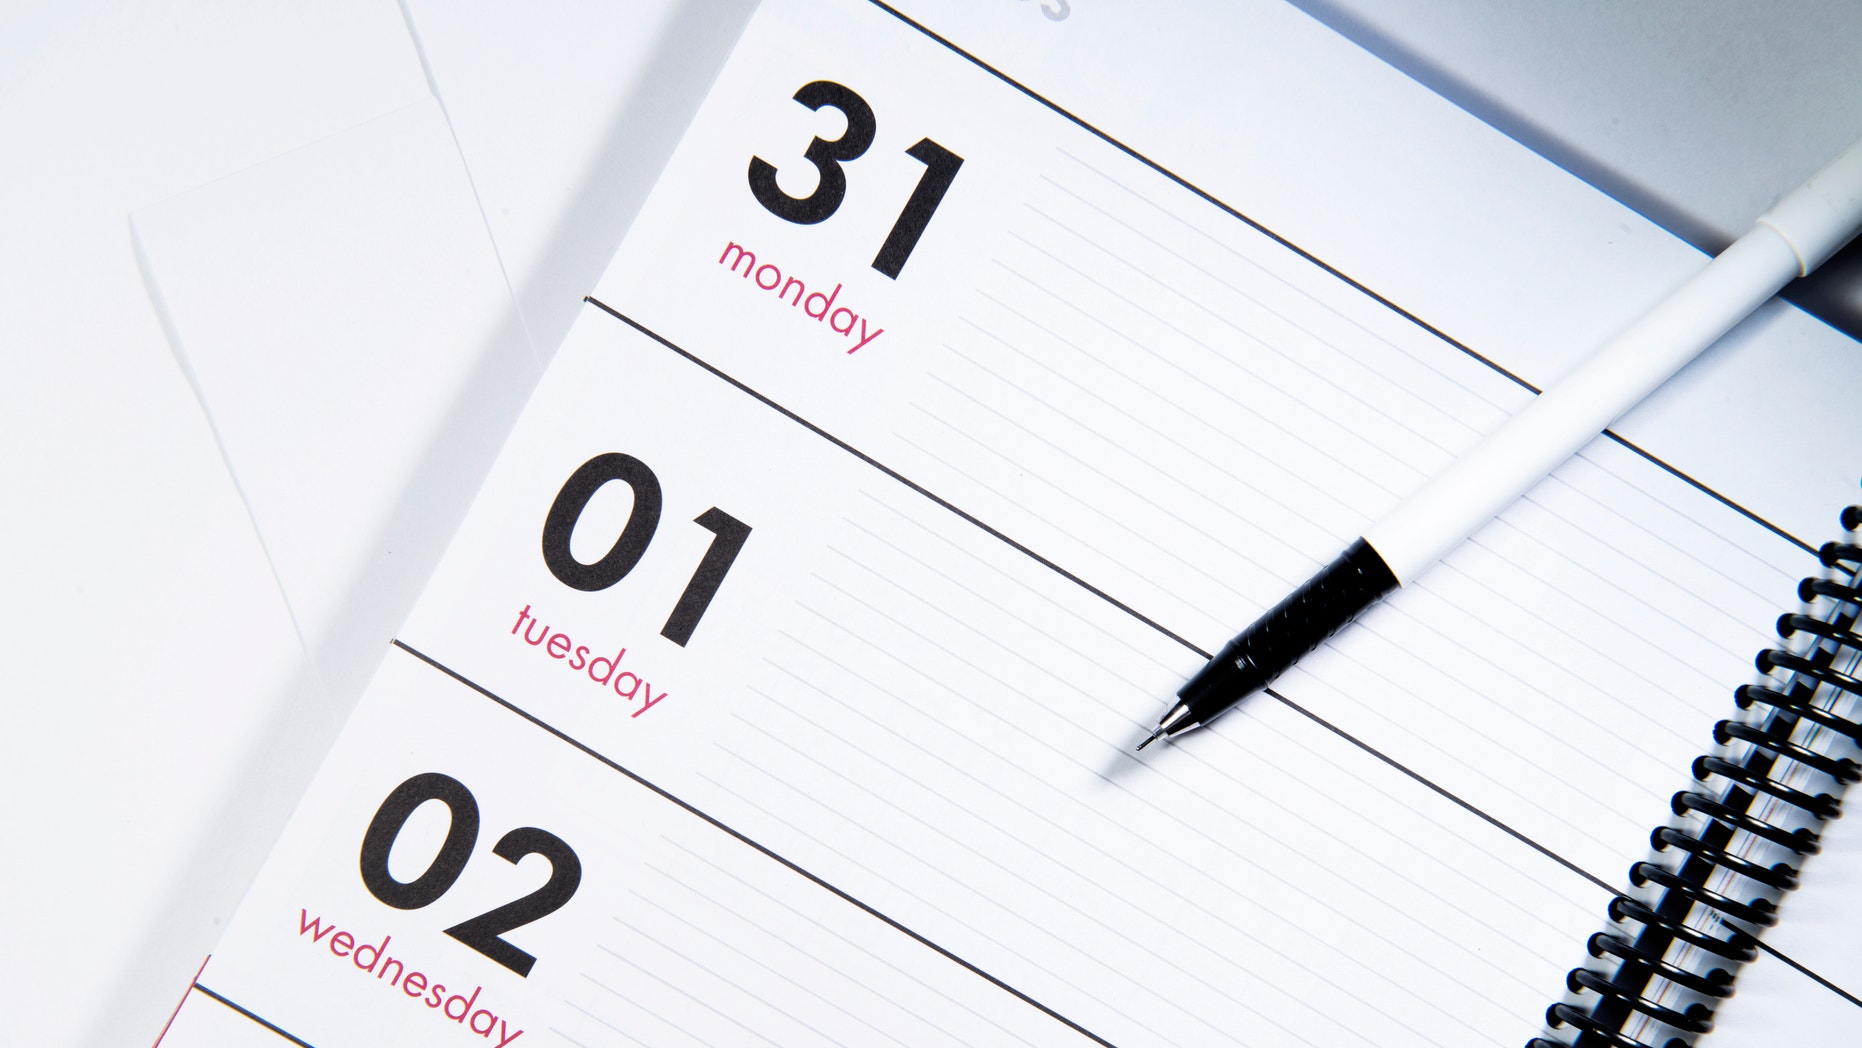 A pen on the calendar, seems somebody want to make a plan.